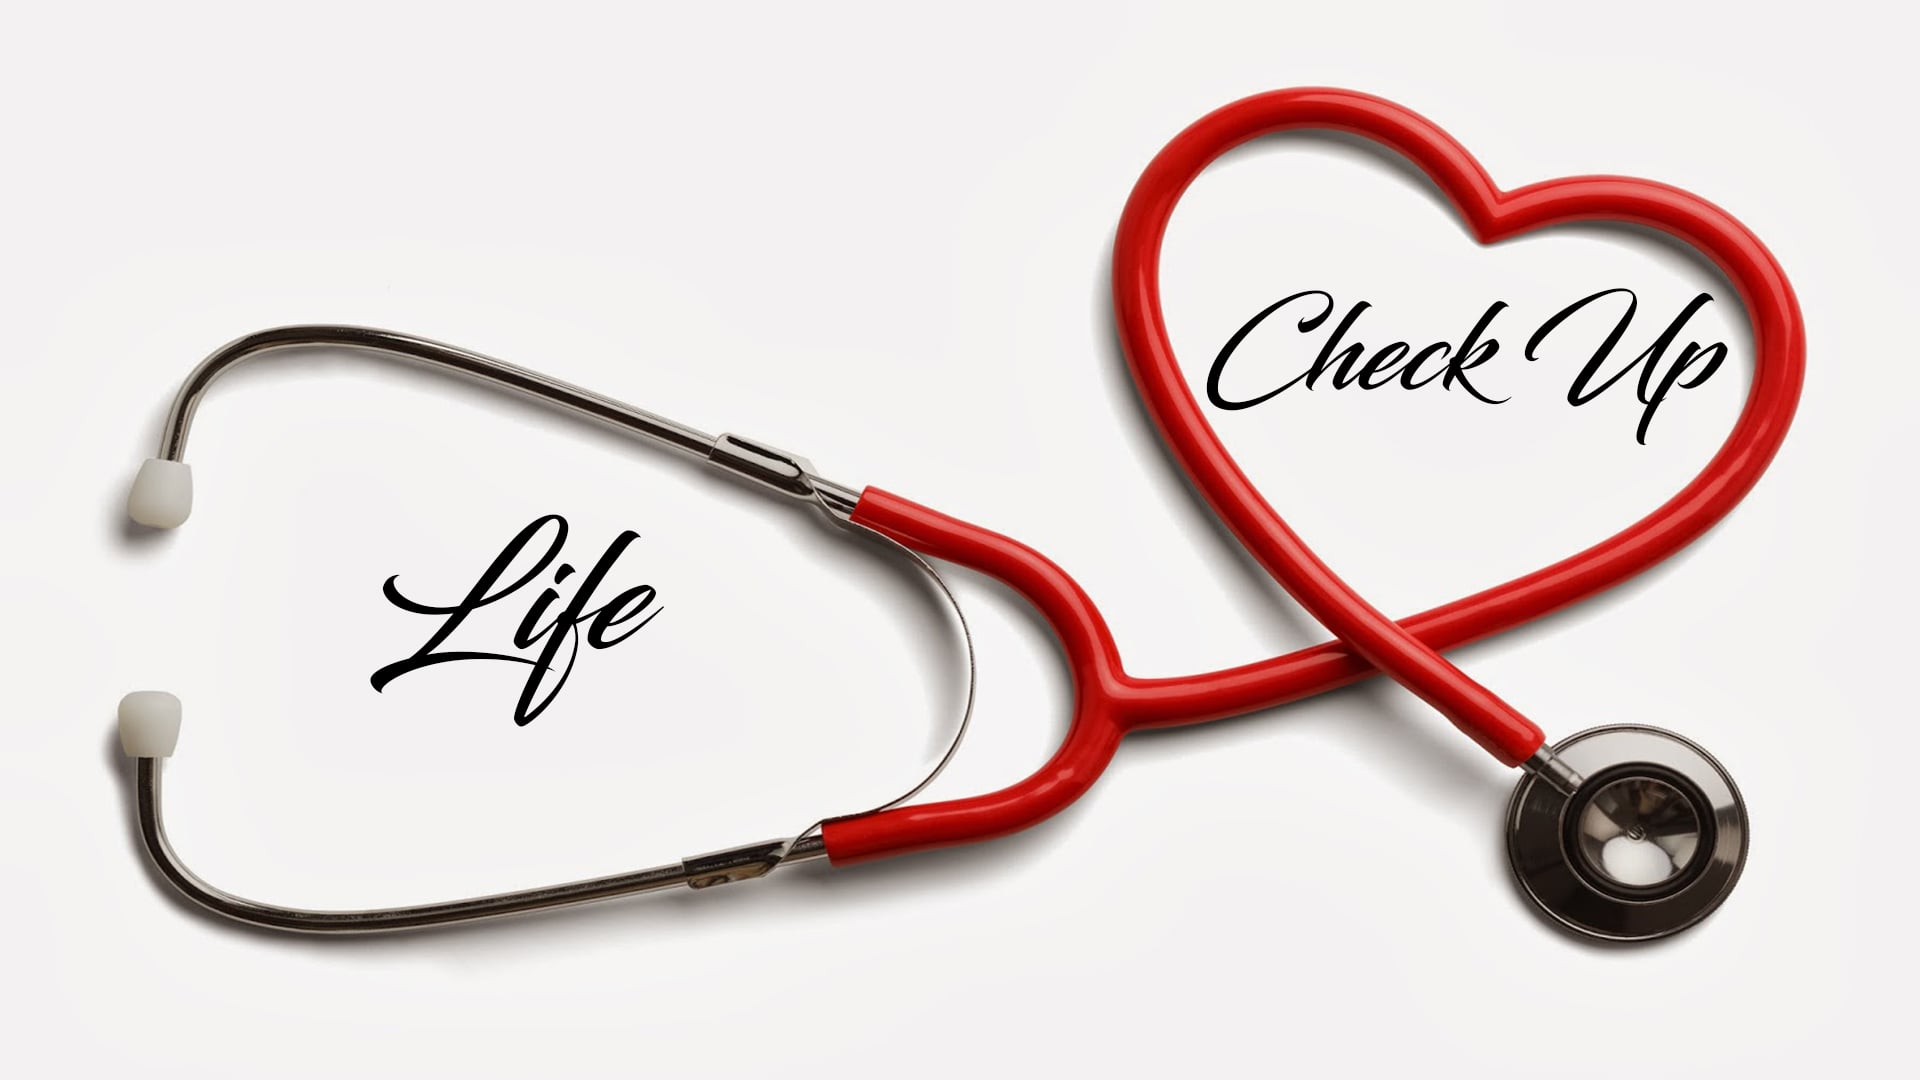 Life Check Up Part 2- Pastor Fred McCarthy